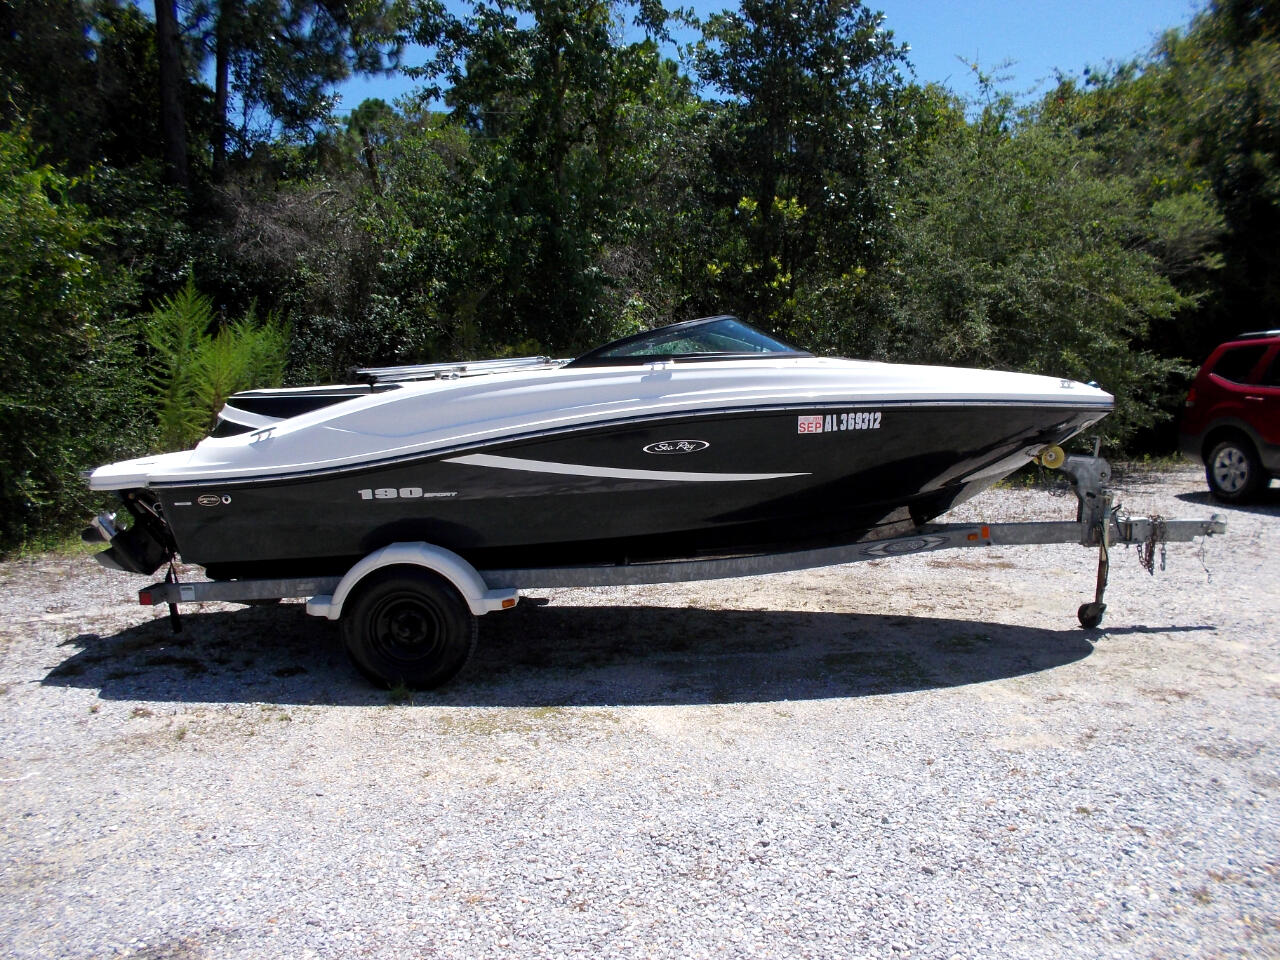 2012 Sea Ray 190 Sport 4.3 V-6 Upgrade